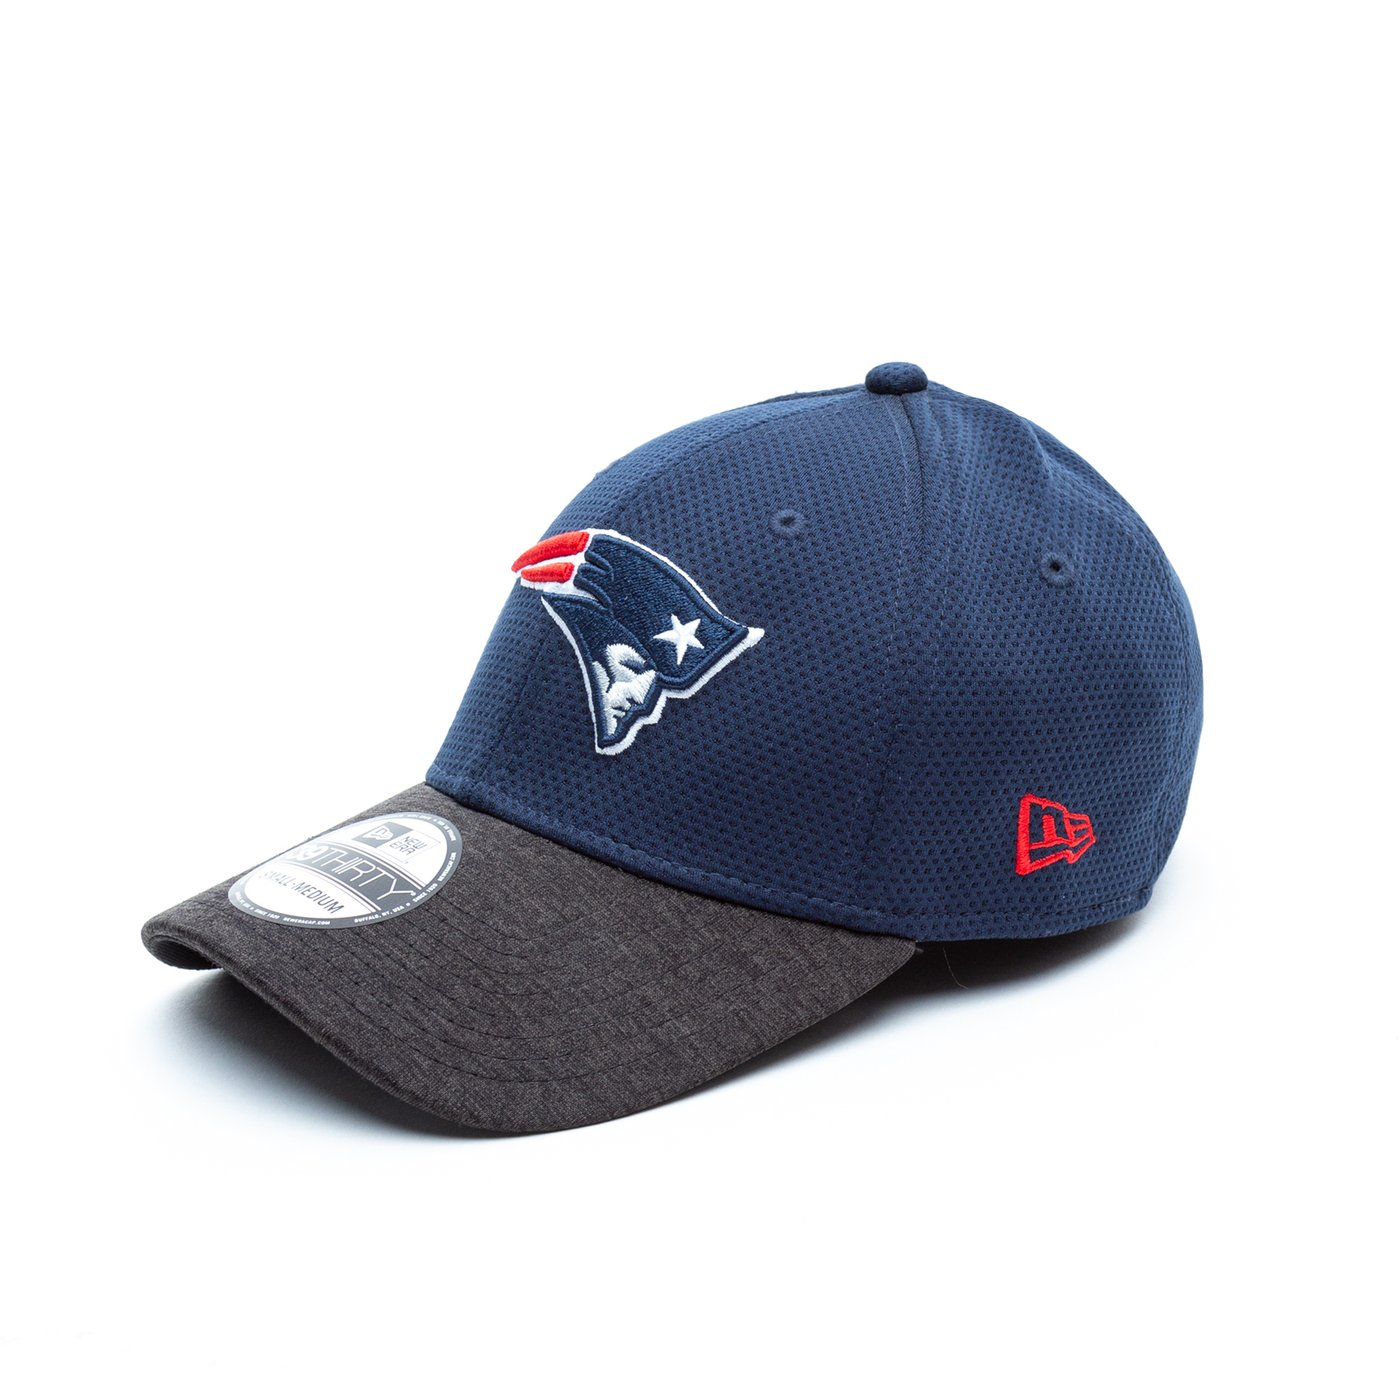 New Era 39Thirty NFL Unisex Lacivert Şapka